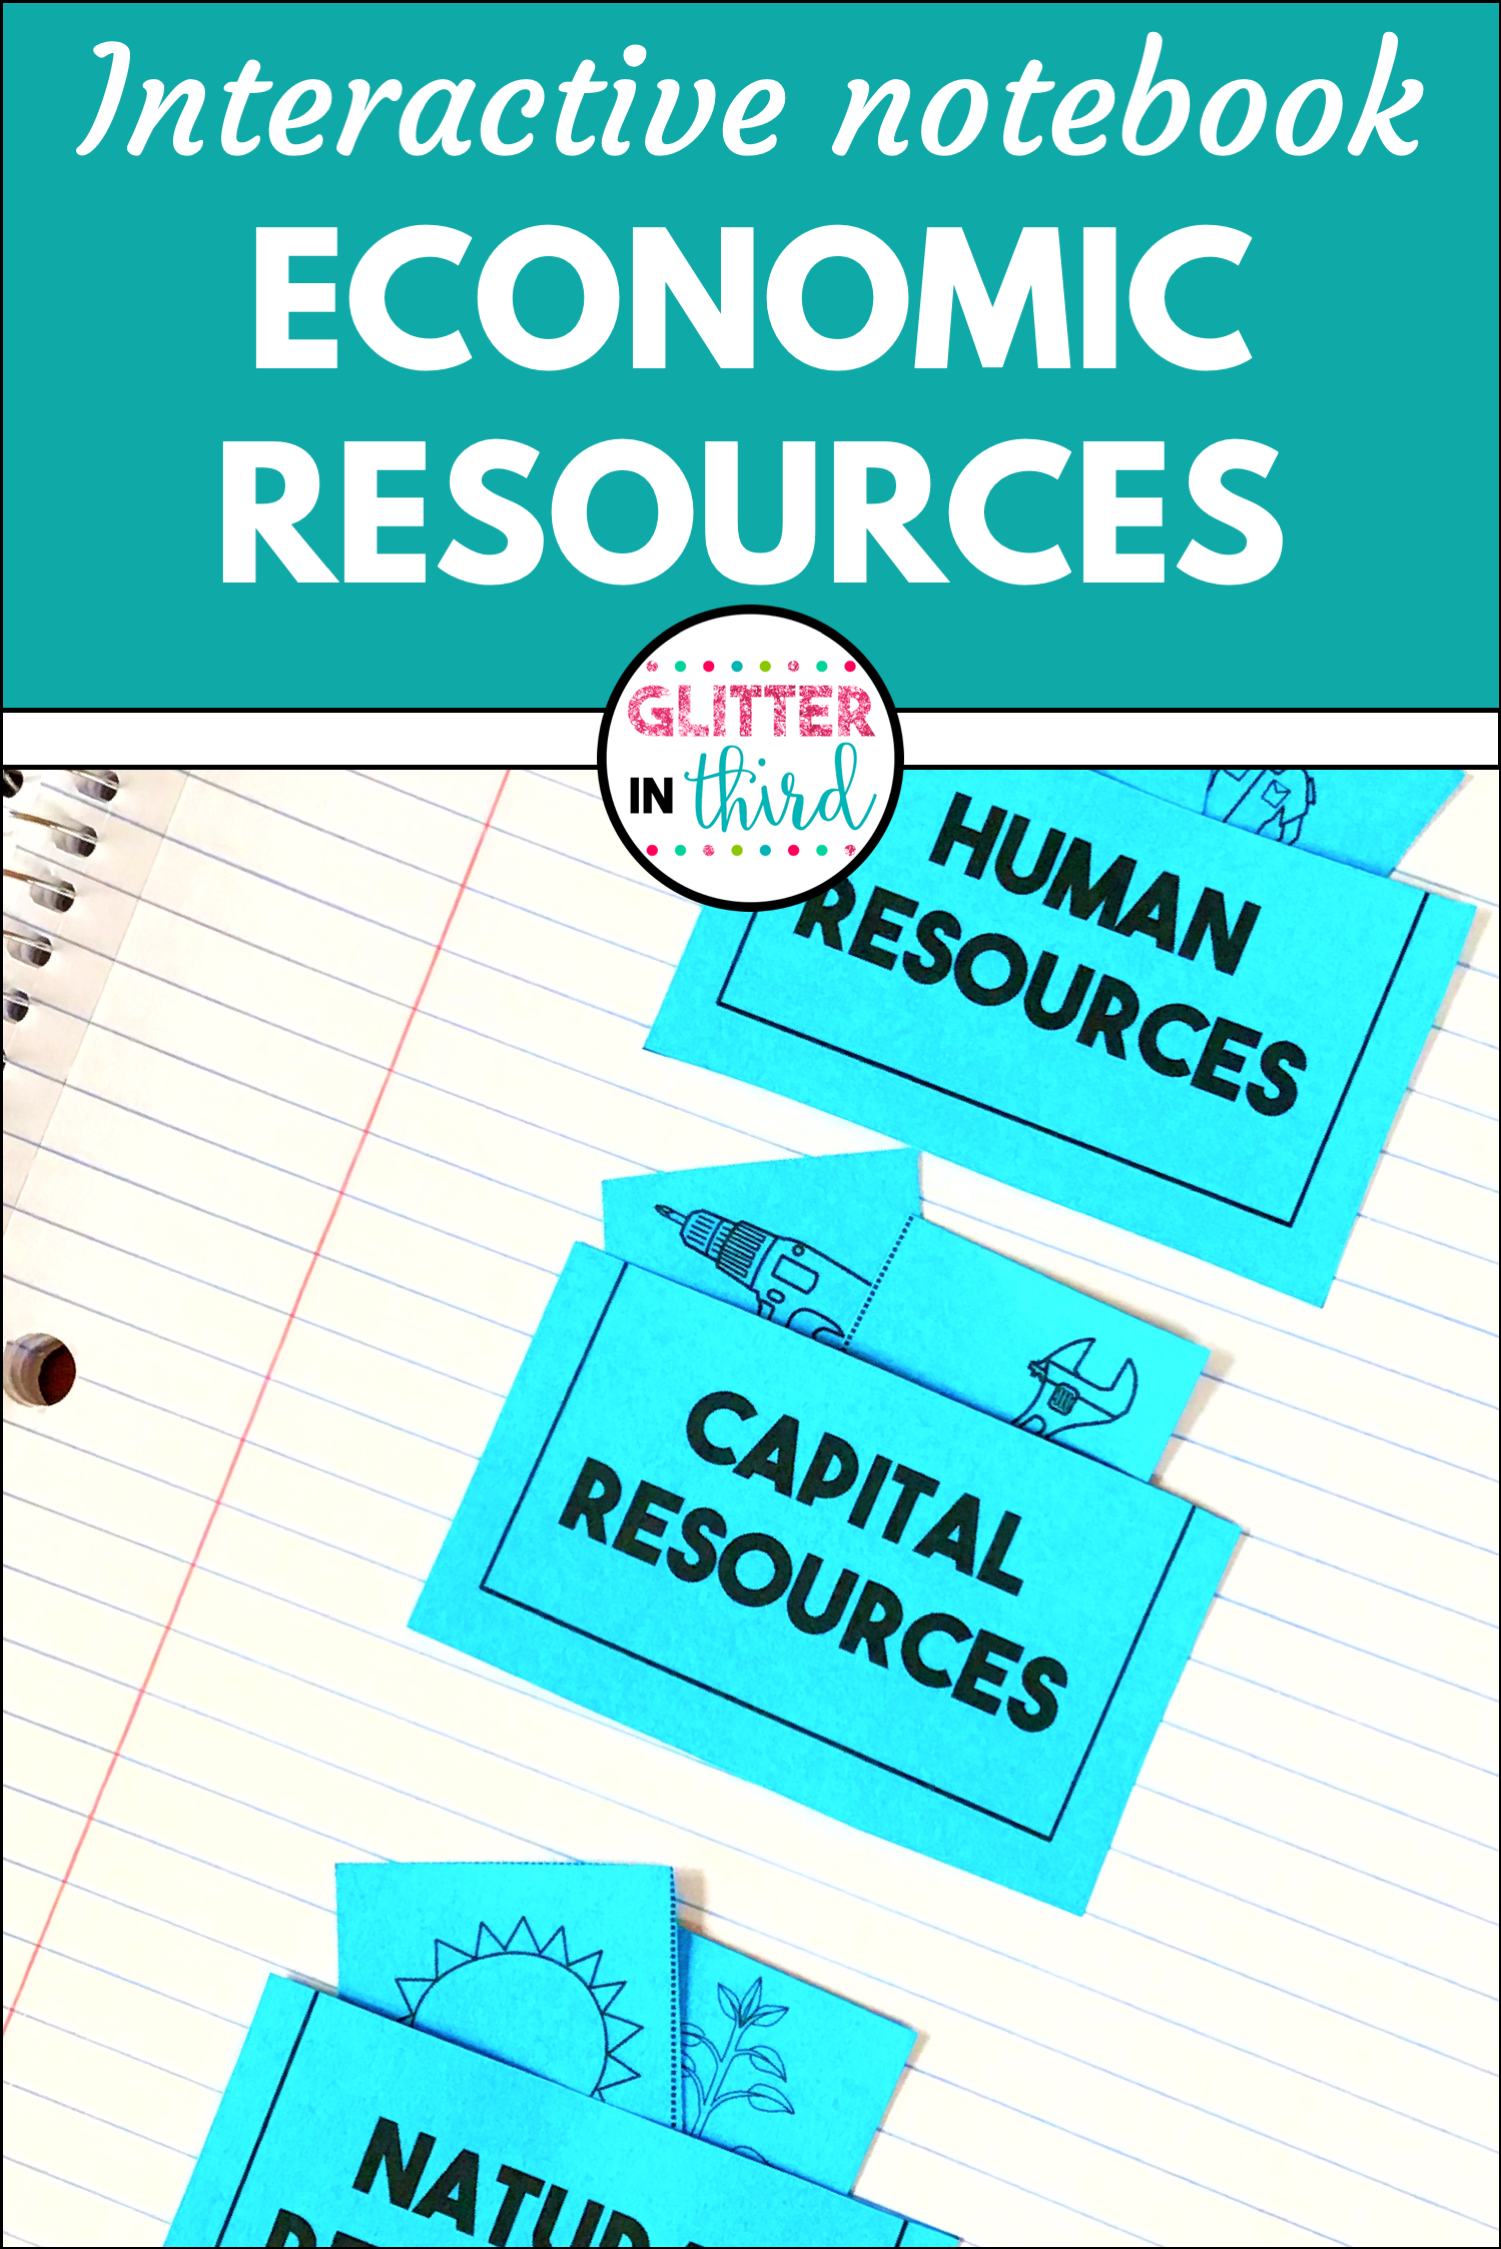 Natural Human And Capital Resources Interactive Notebook